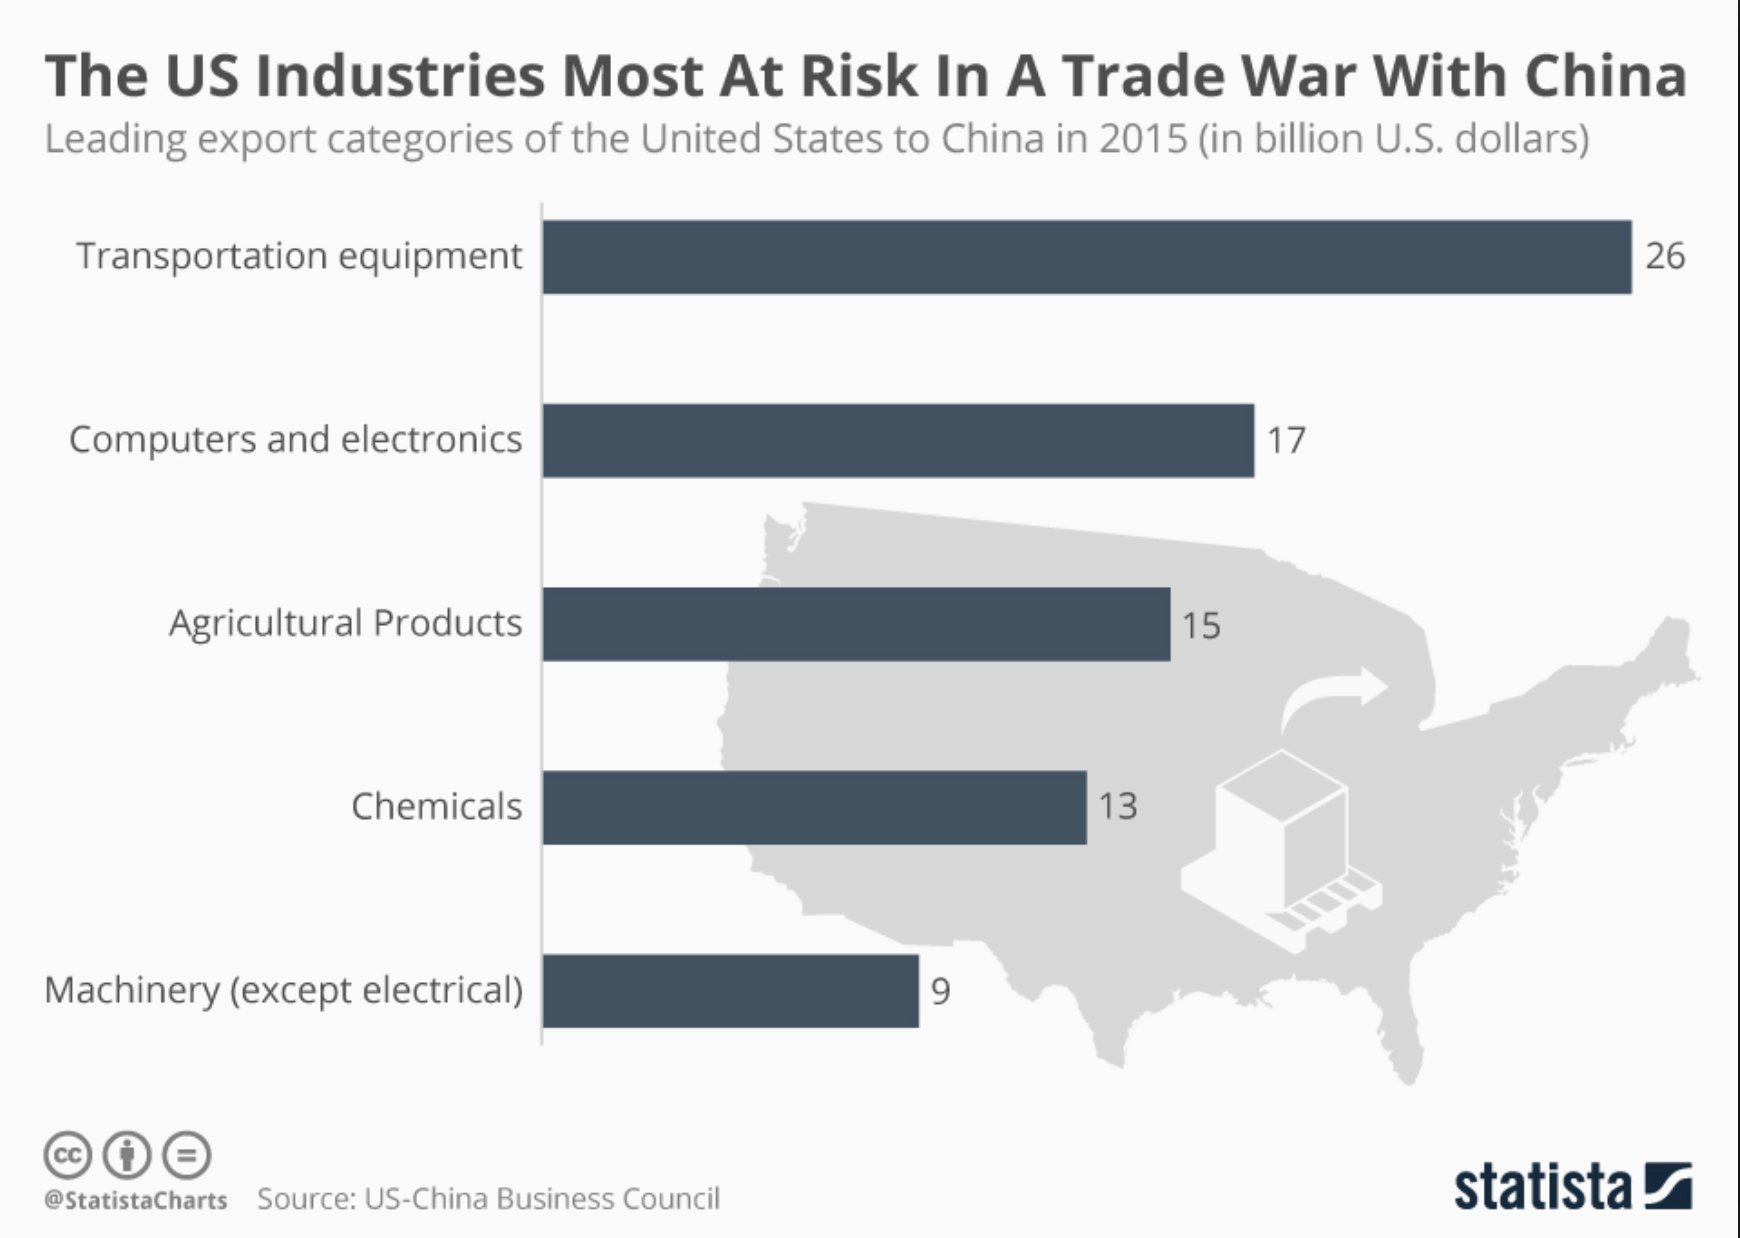 The US industries most at risk from a trade war with China